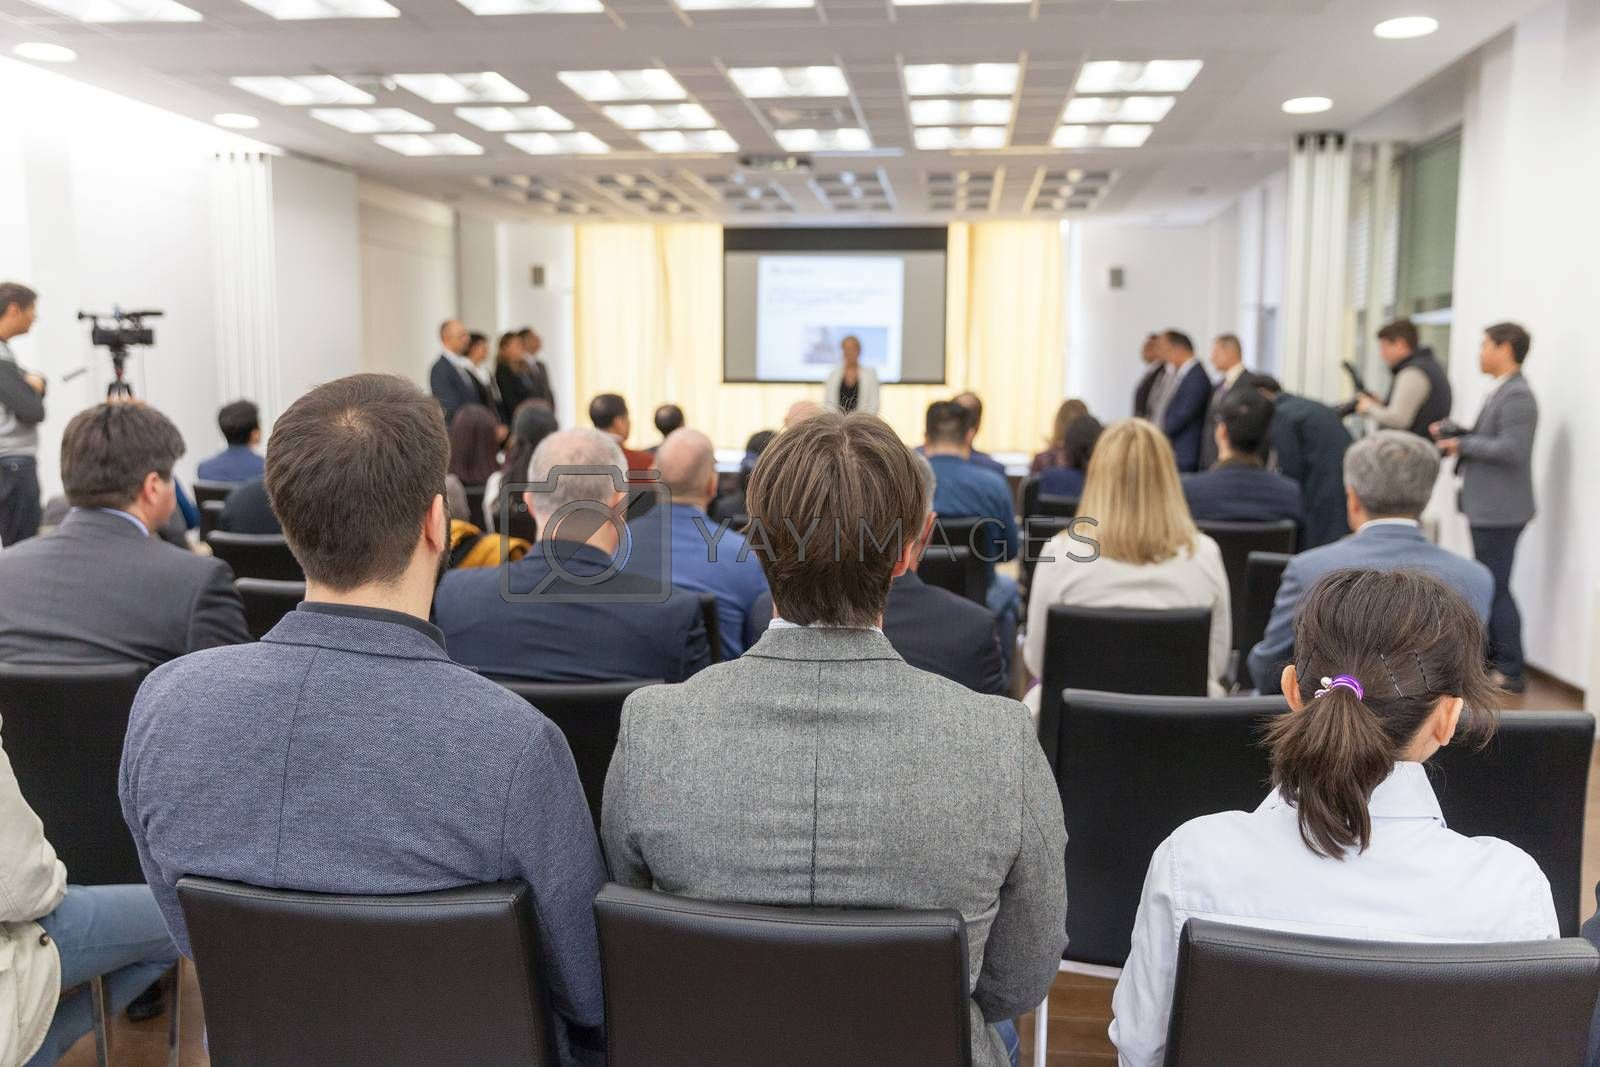 Participants at the professional or business conference